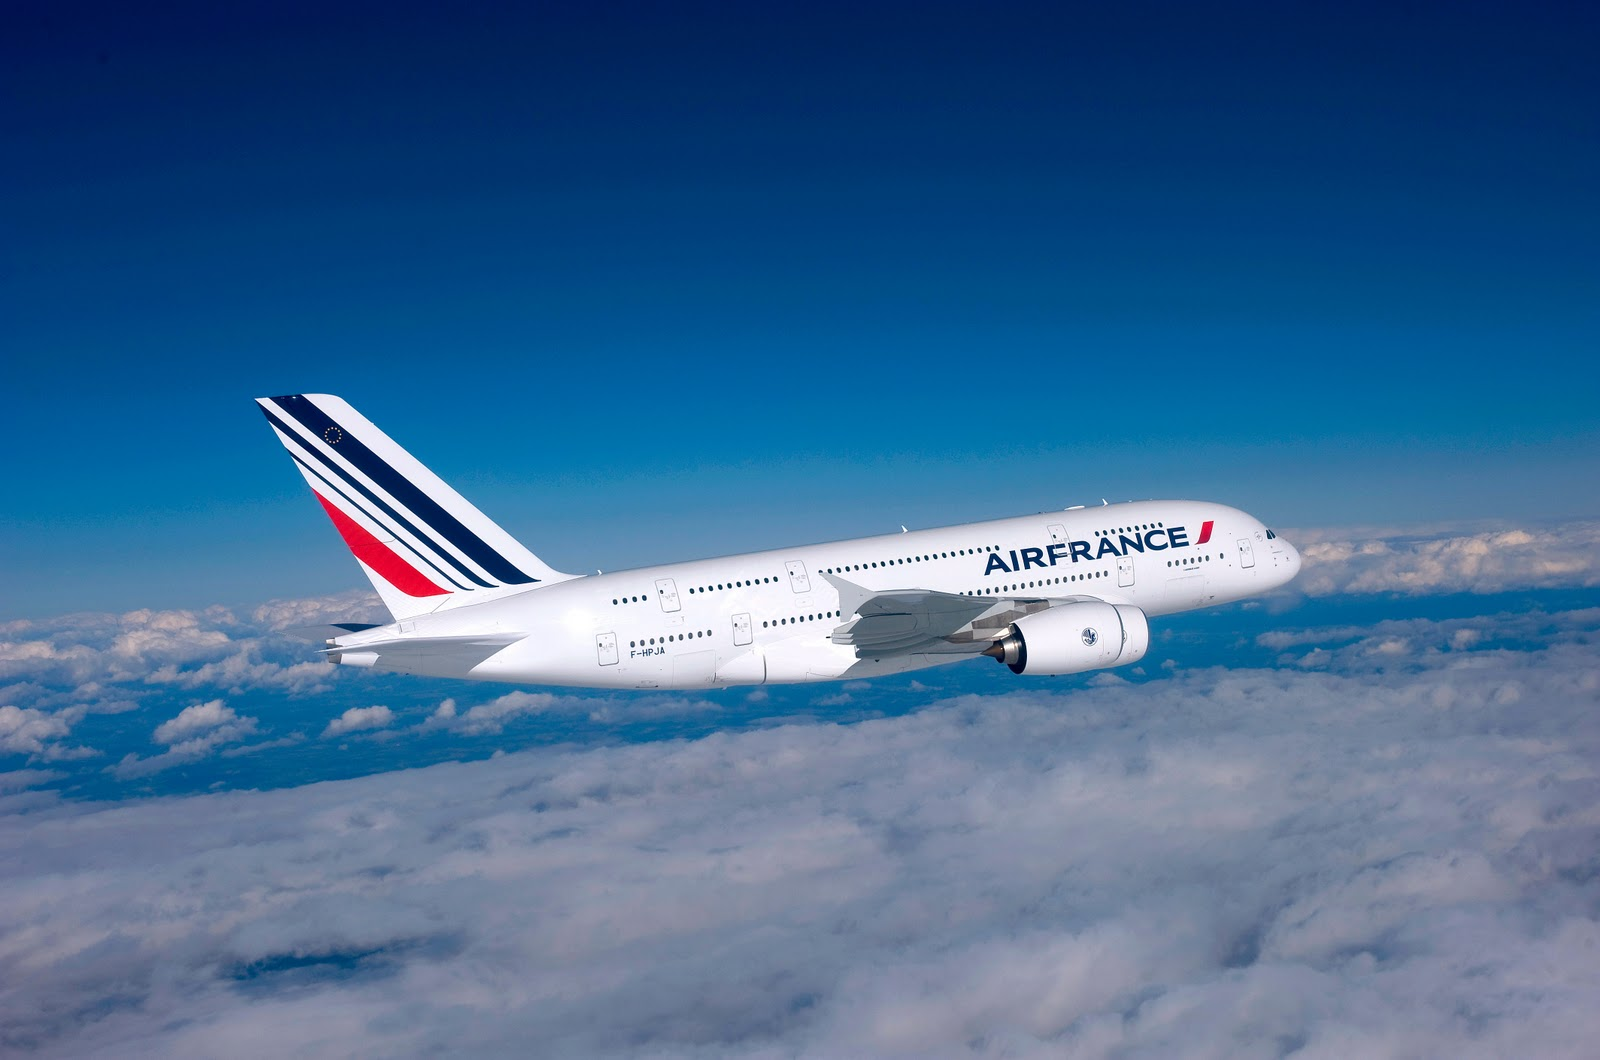 Wallpaper wallpaper a380 for A380 air france interieur